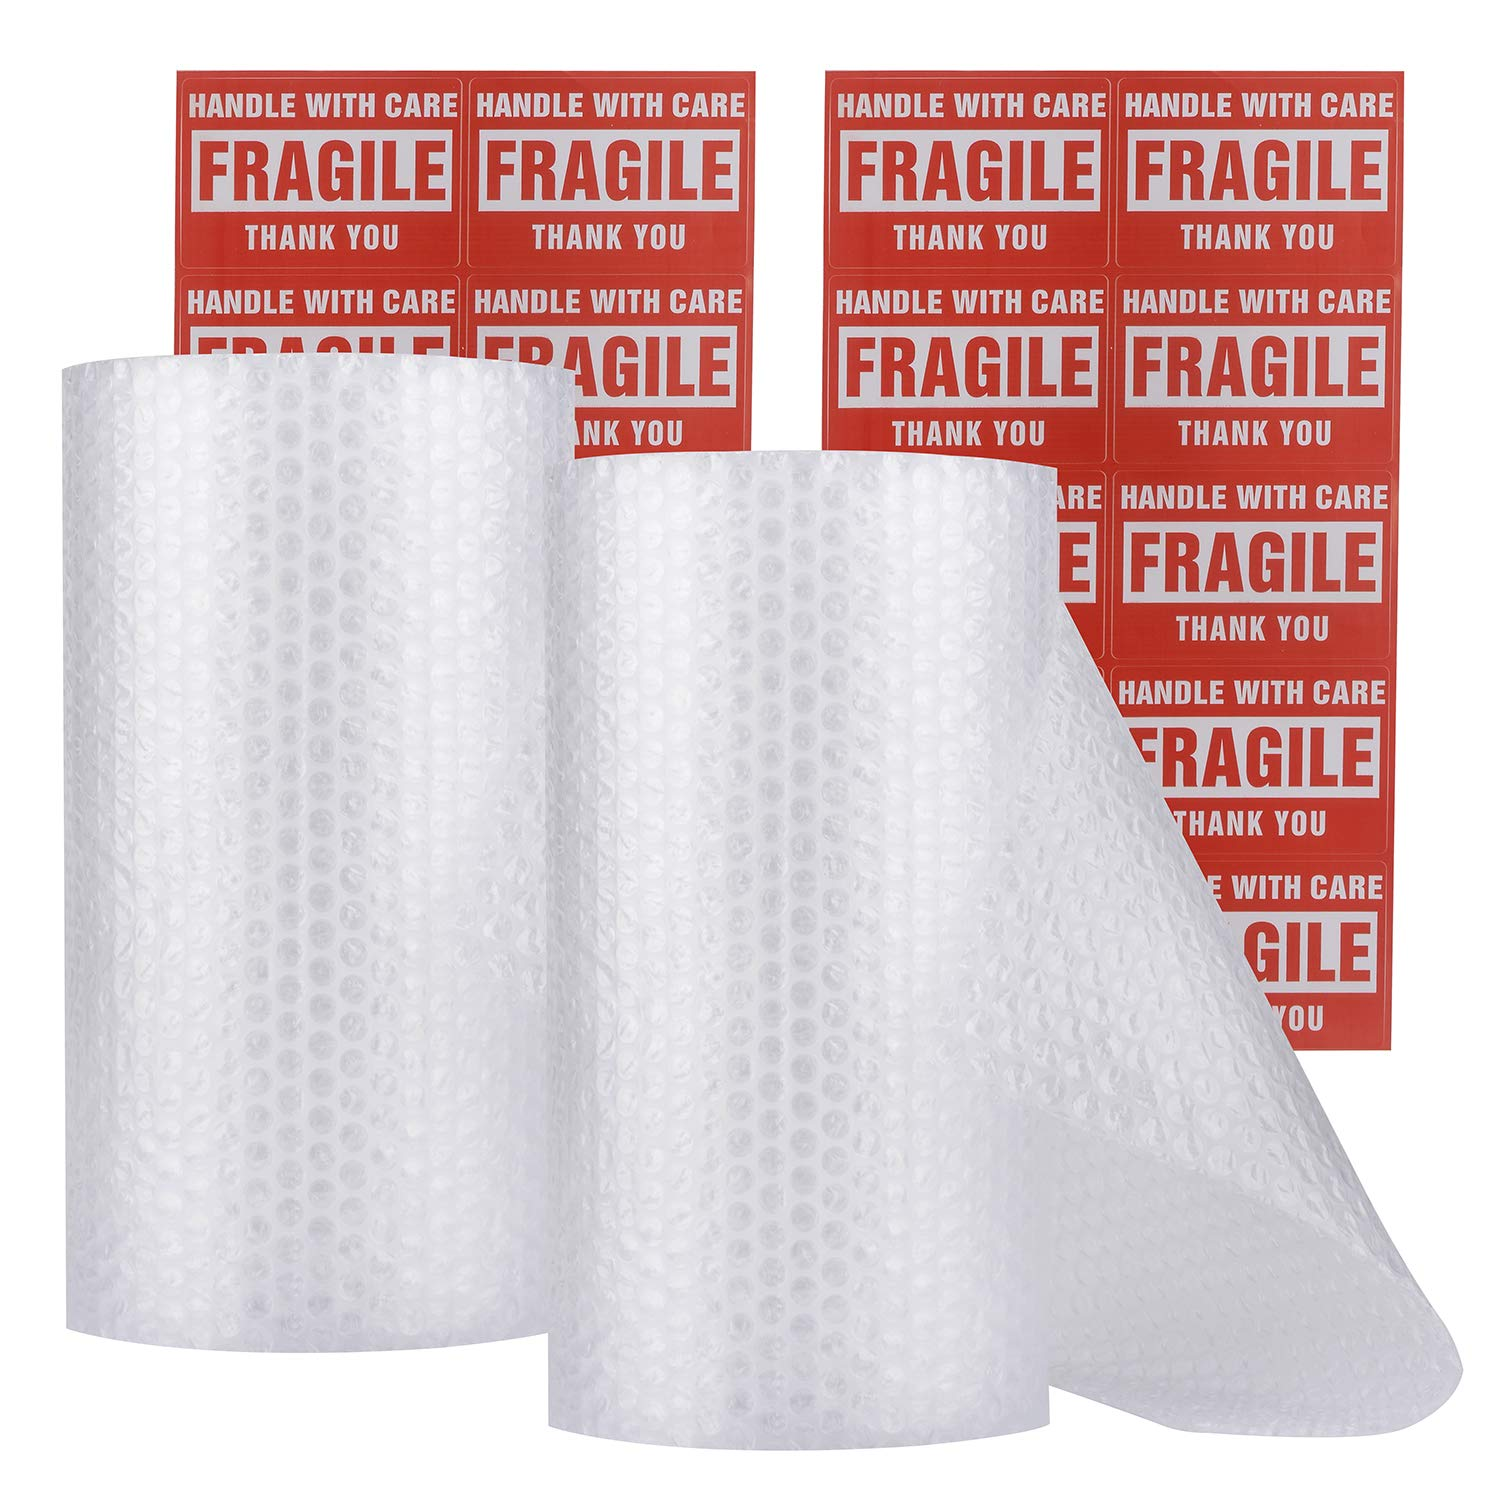 enKo Bubble Cushioning Wrap Roll 3/16'' for Moving (2 Rolls, Total: 12 x 60 ft) Perforated Every 12 inch for Easy Tear with 20 Fragile Labels Included